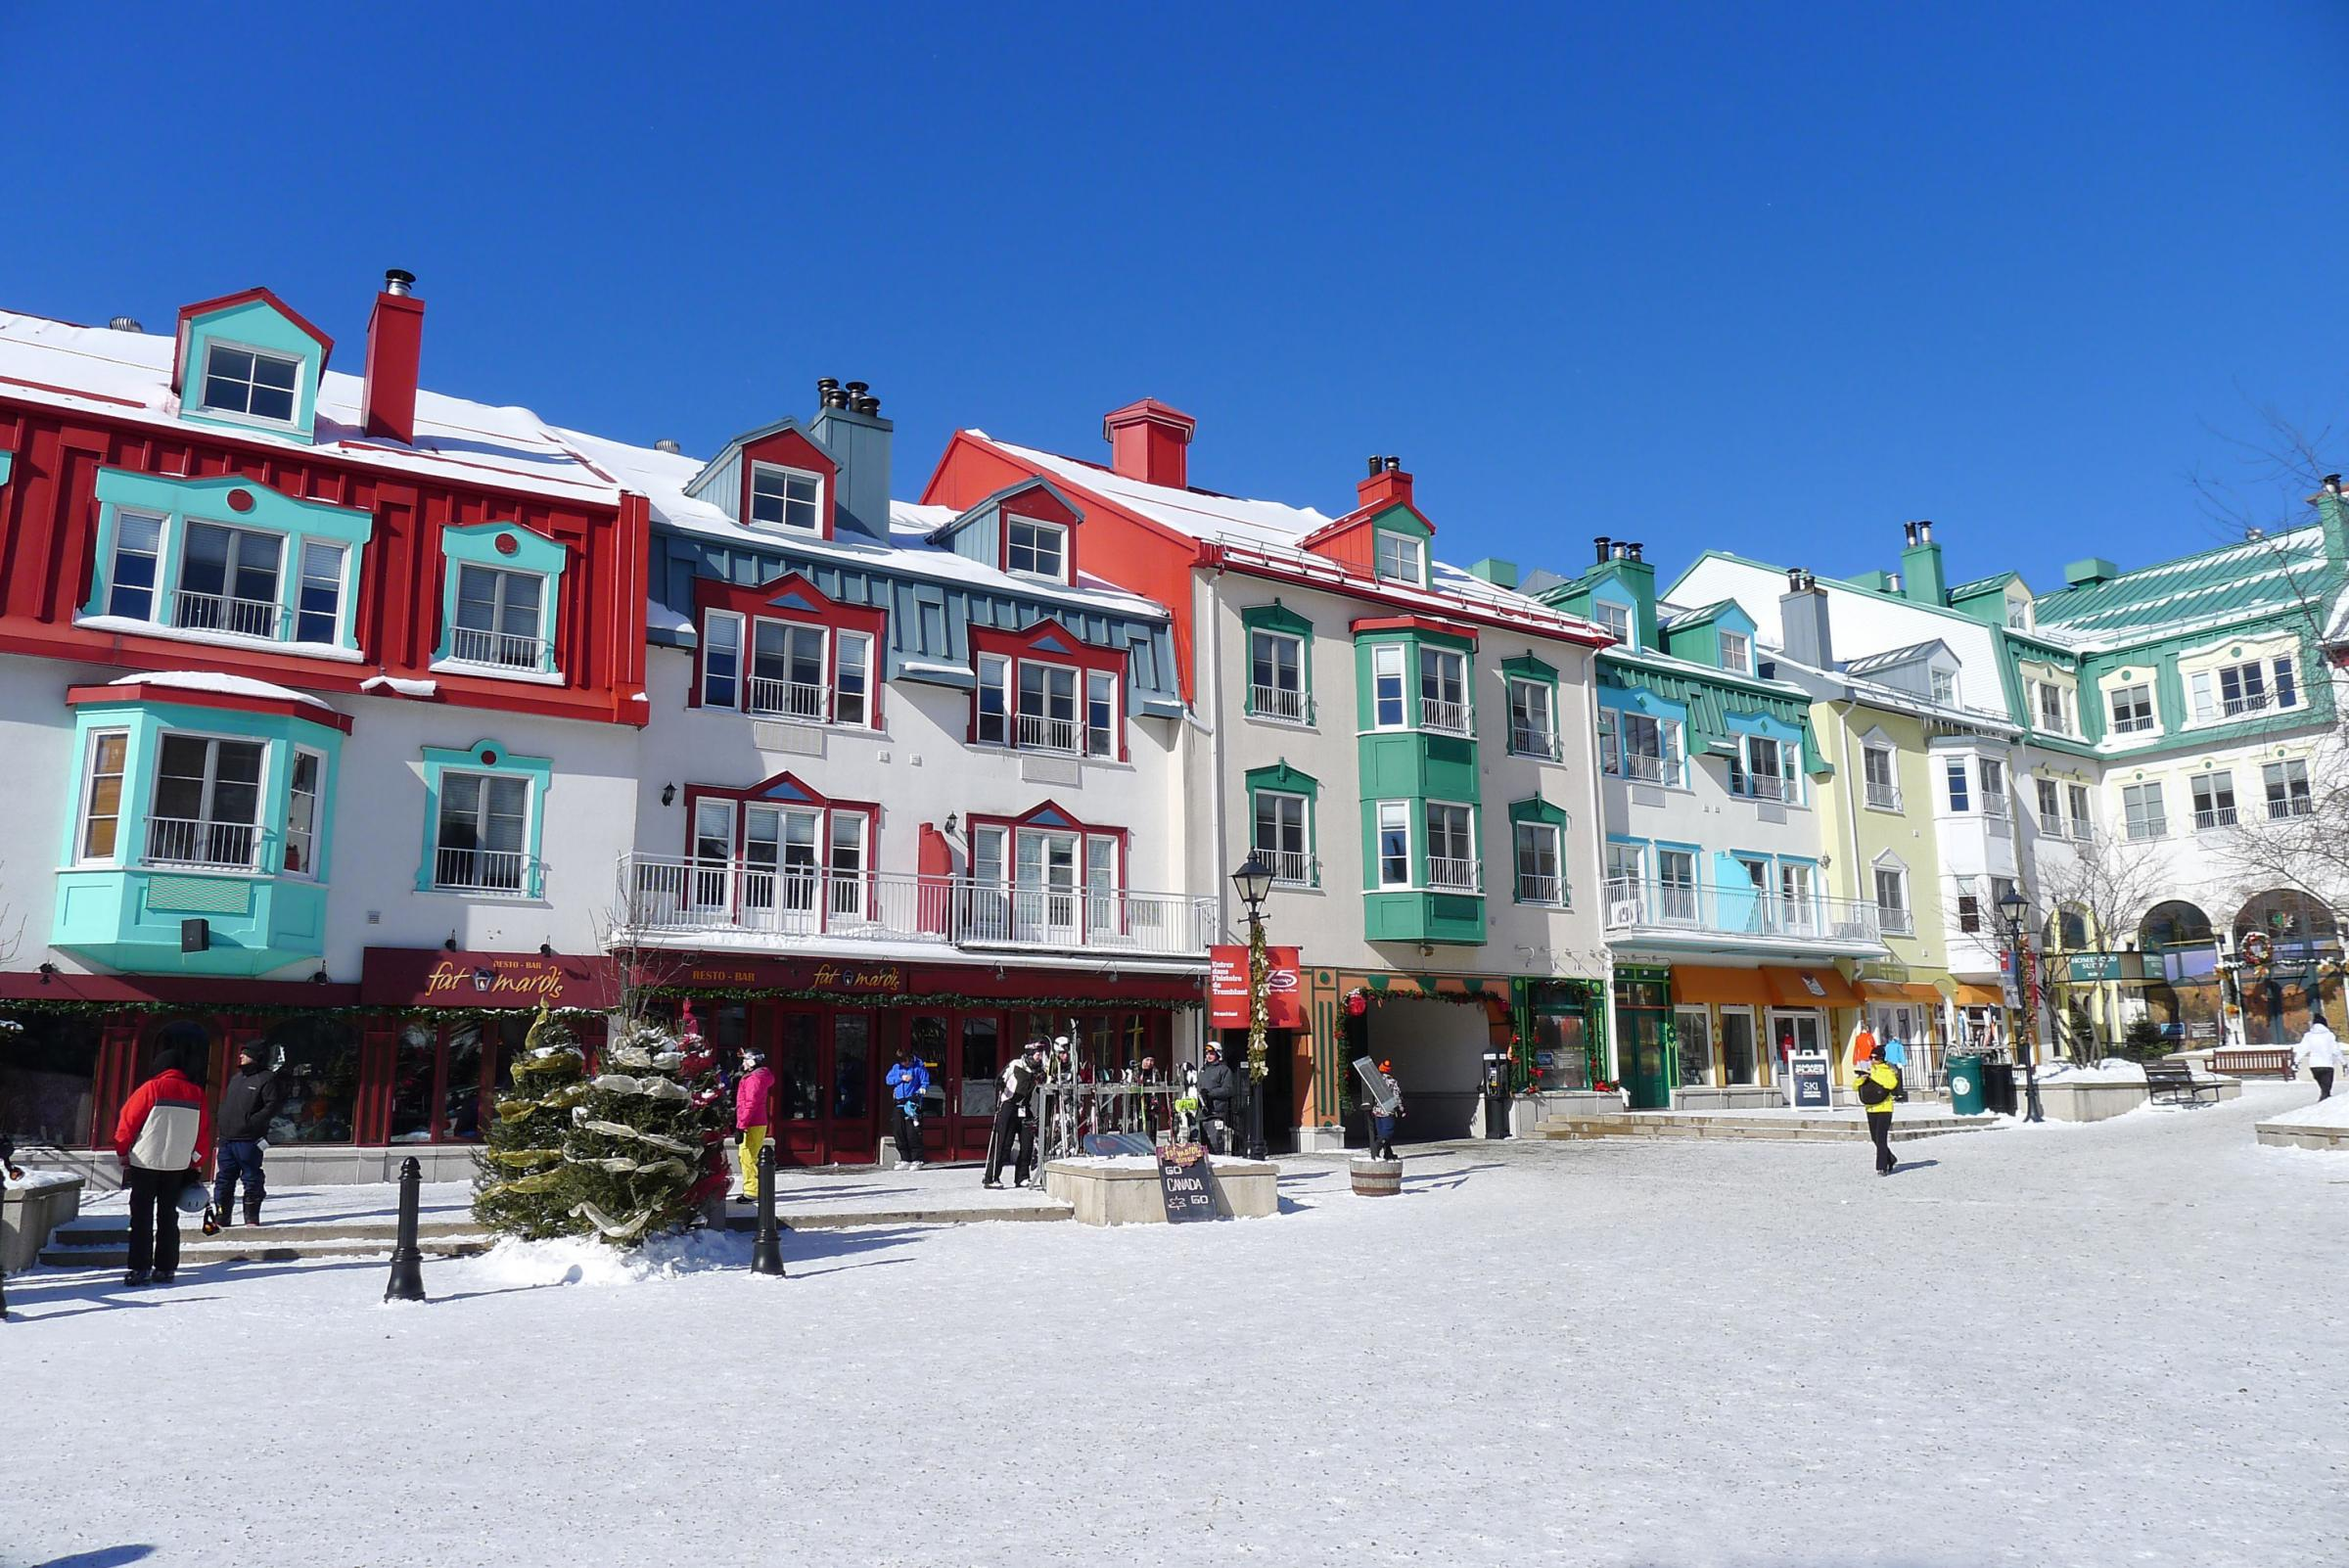 Hannah Stephenson samples ski-ing, spas and shopping in Mont Tremblant